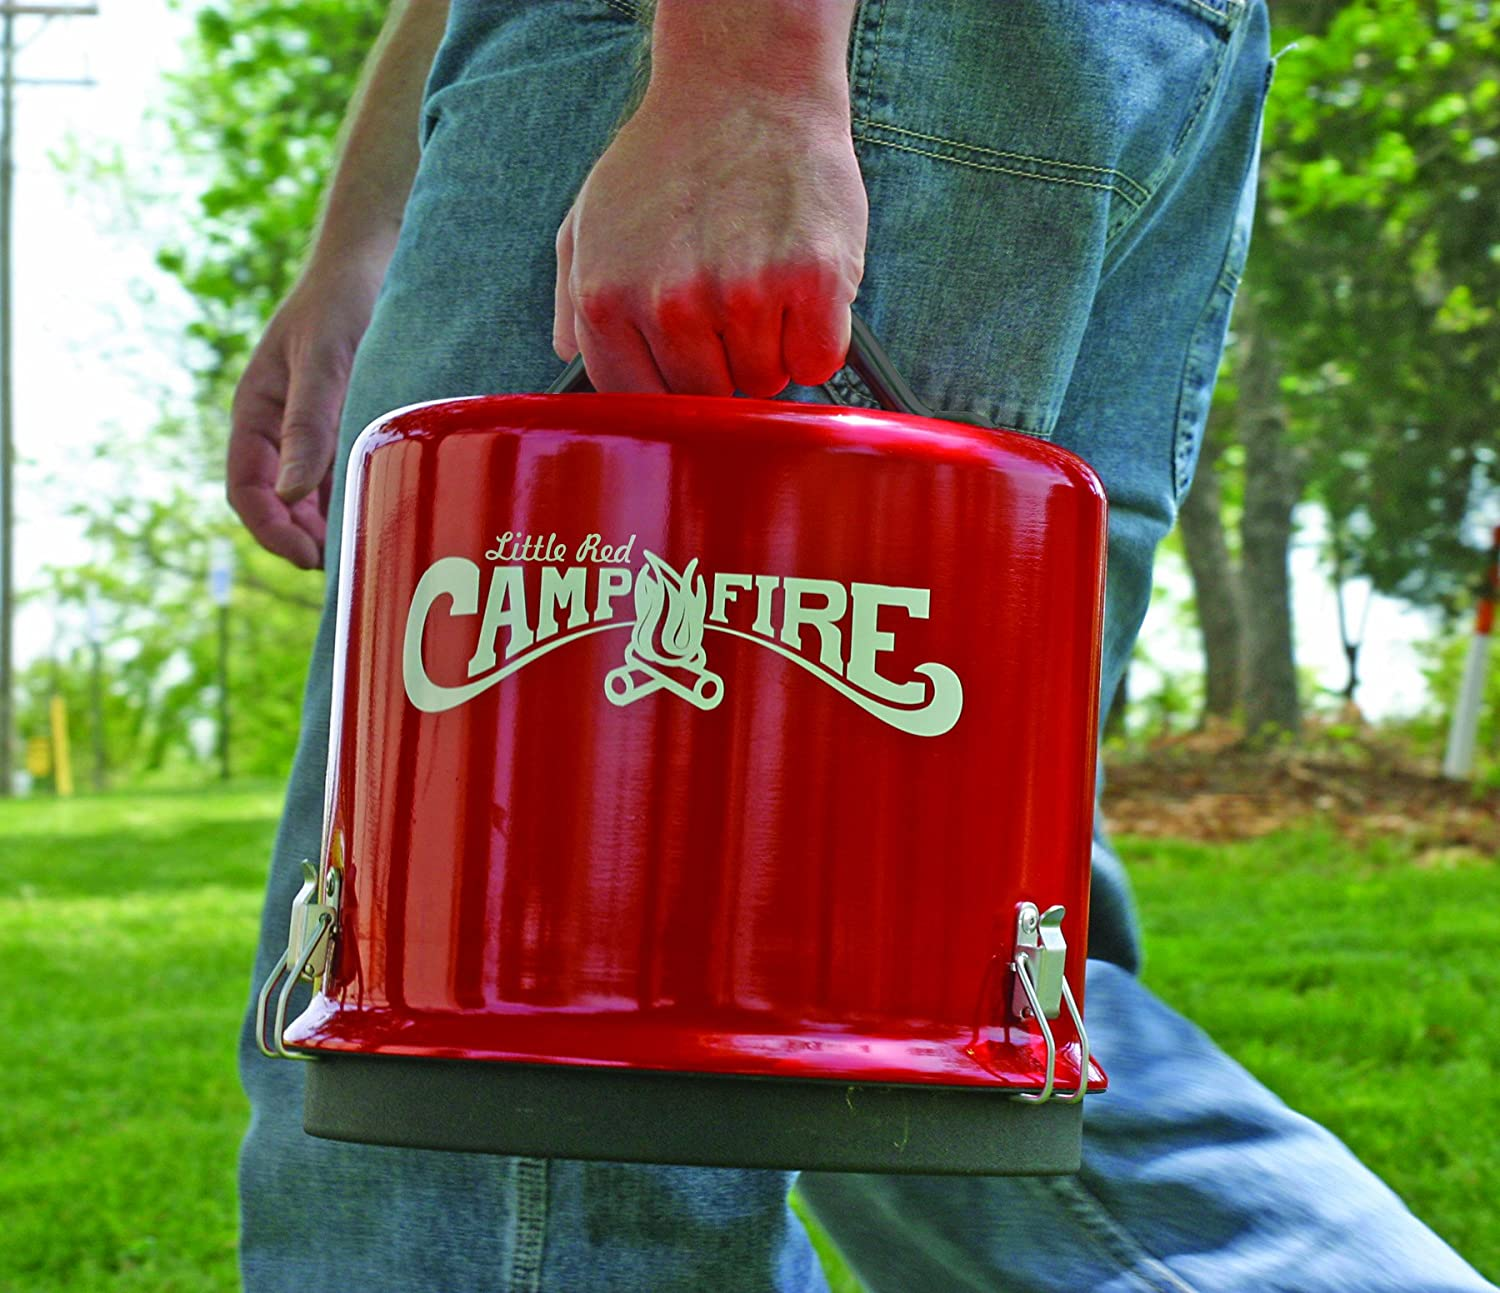 Gentil Amazon.com: Camco Little Red Campfire 11.25 Inch Portable Propane Outdoor  Camp Fire, Approved RV Campgrounds   65,000 BTUu0027s Includes 8 Foot Propane  Hose ...